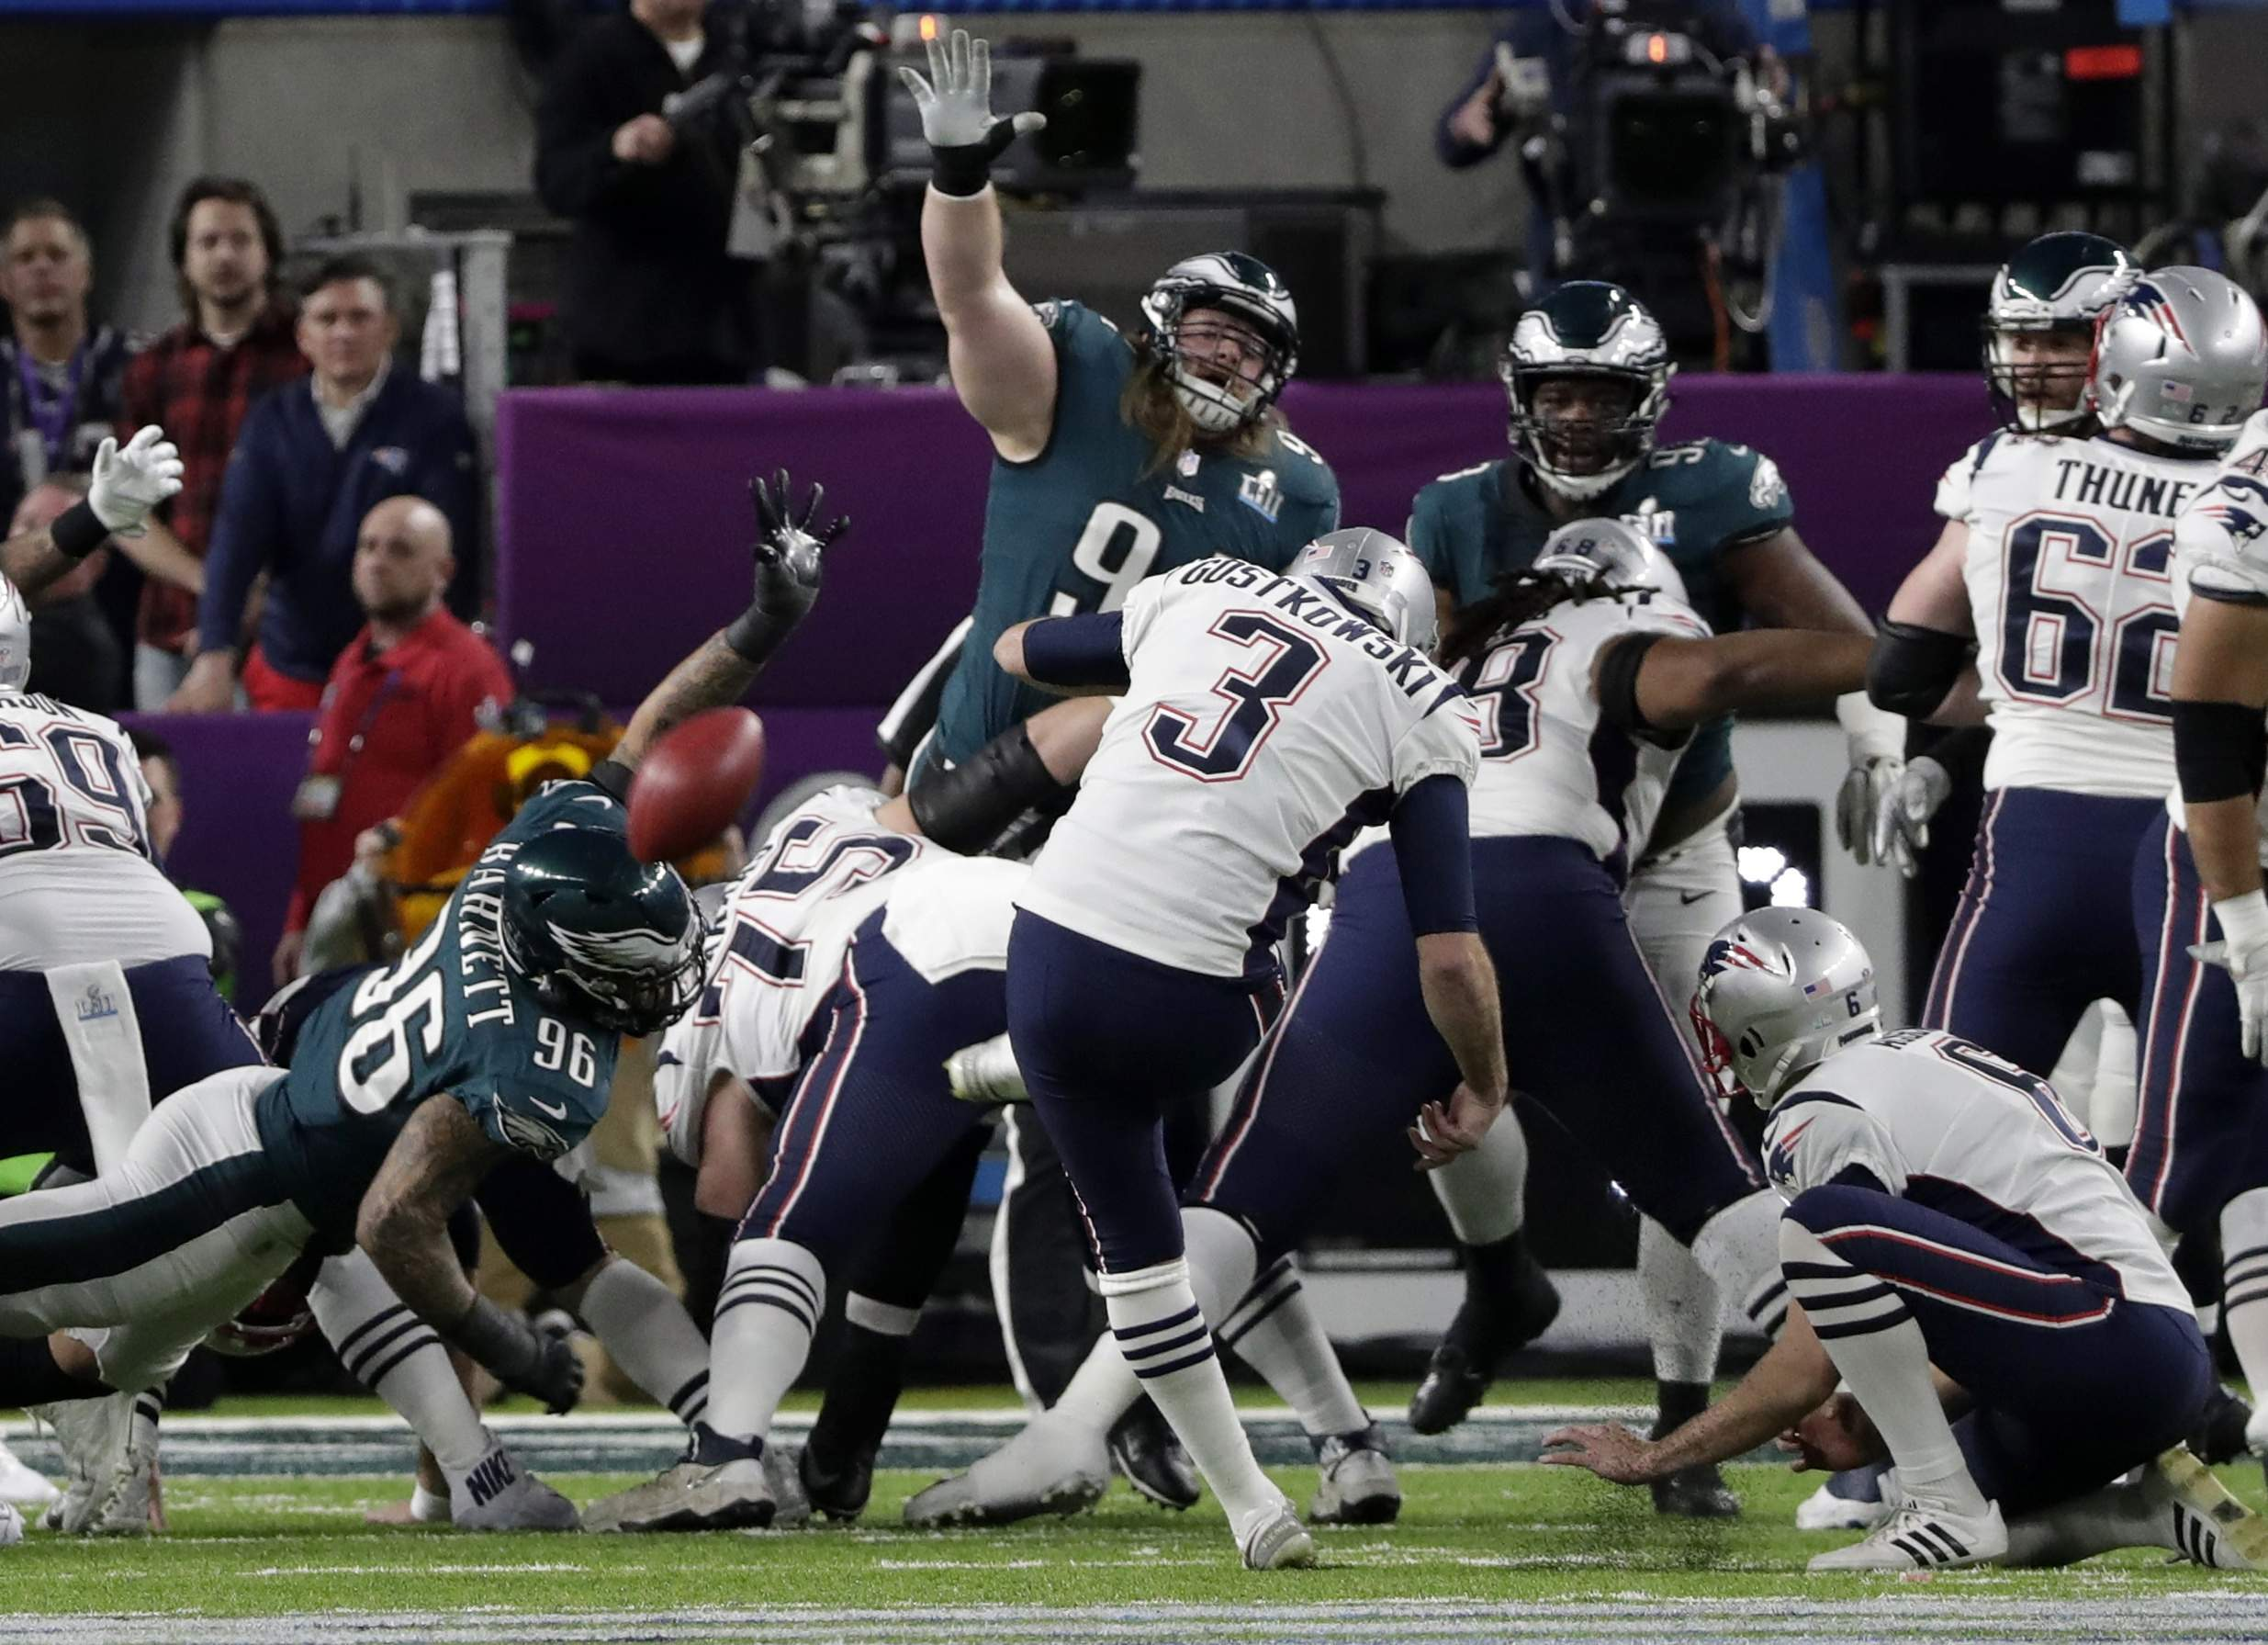 New England Patriots kicker Stephen Gostkowski (3), misses a field goal during the first half of the NFL Super Bowl 52 , Sunday, Feb. 4, 2018, in Minneapolis. (AP Photo/Tony Gutierrez)